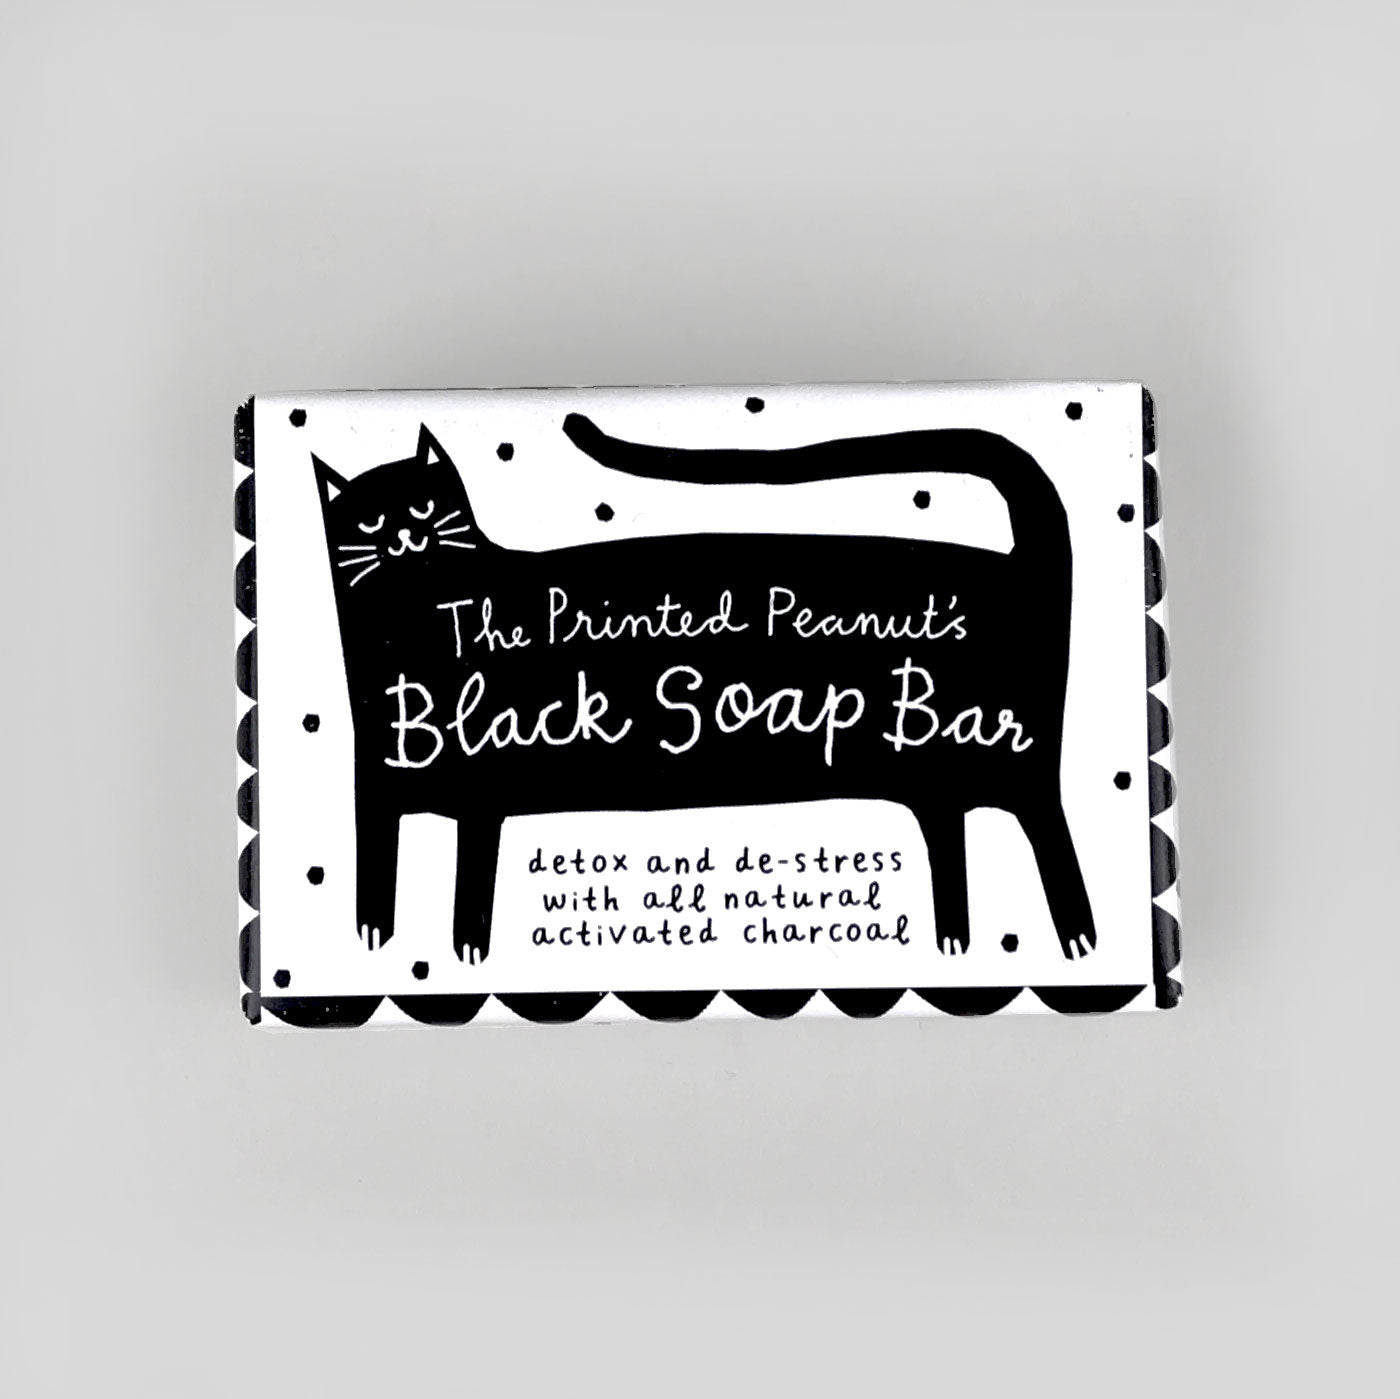 Printed Peanut Black Soap bar